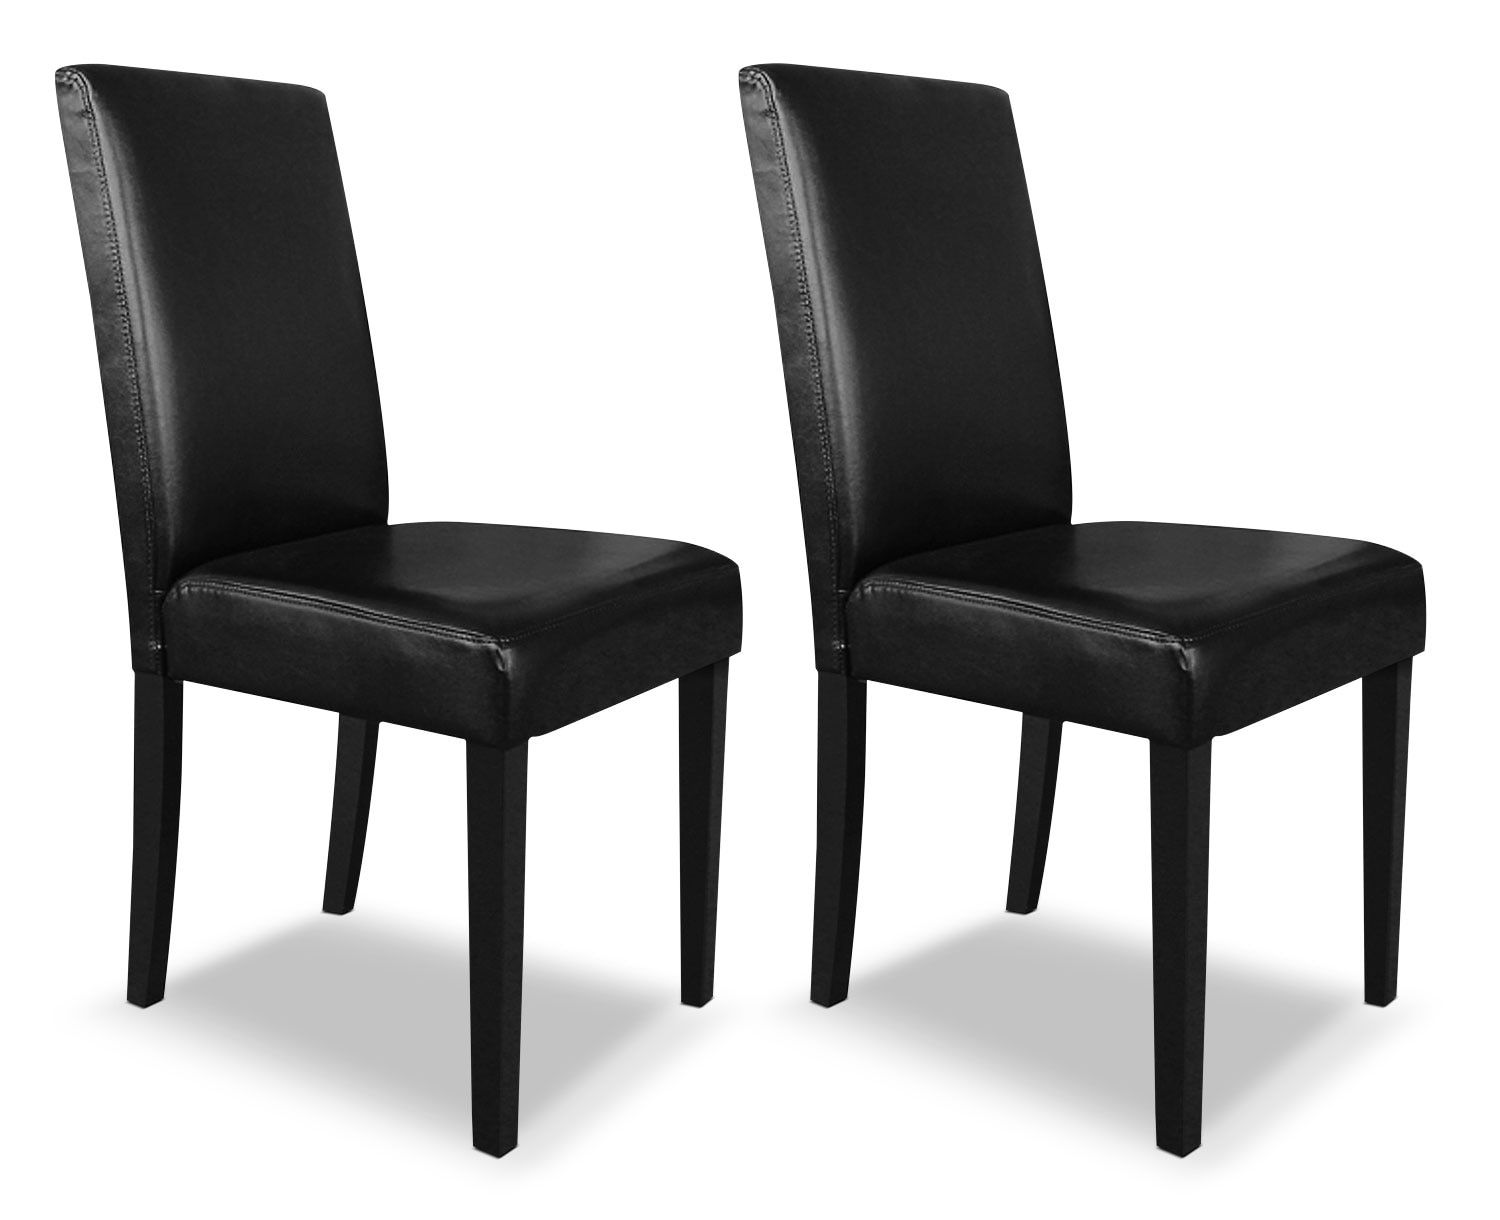 Black Faux Leather Accent Dining Chair – Set of 2